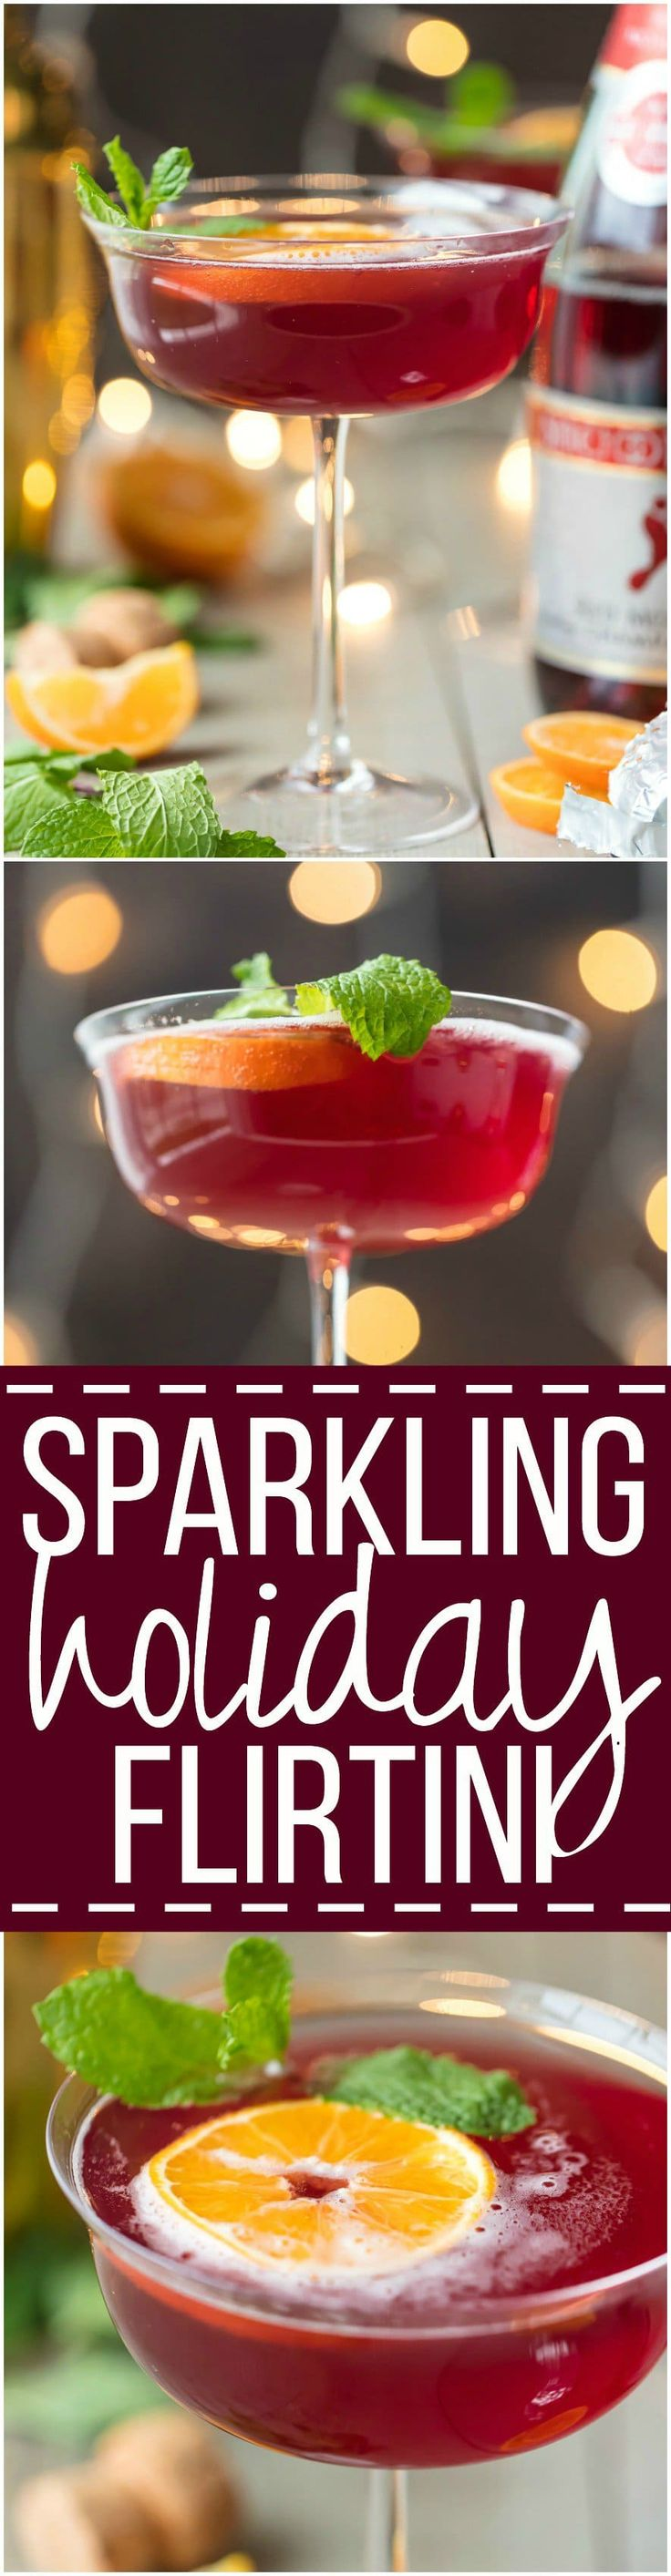 This SPARKLING HOLIDAY FLIRTINI is fun, pretty, and delicious! Cranberry and pineapple juice mixed with orange vodka and topped with red moscato champagne, what could be better or more festive for Christmas or New Years Eve!